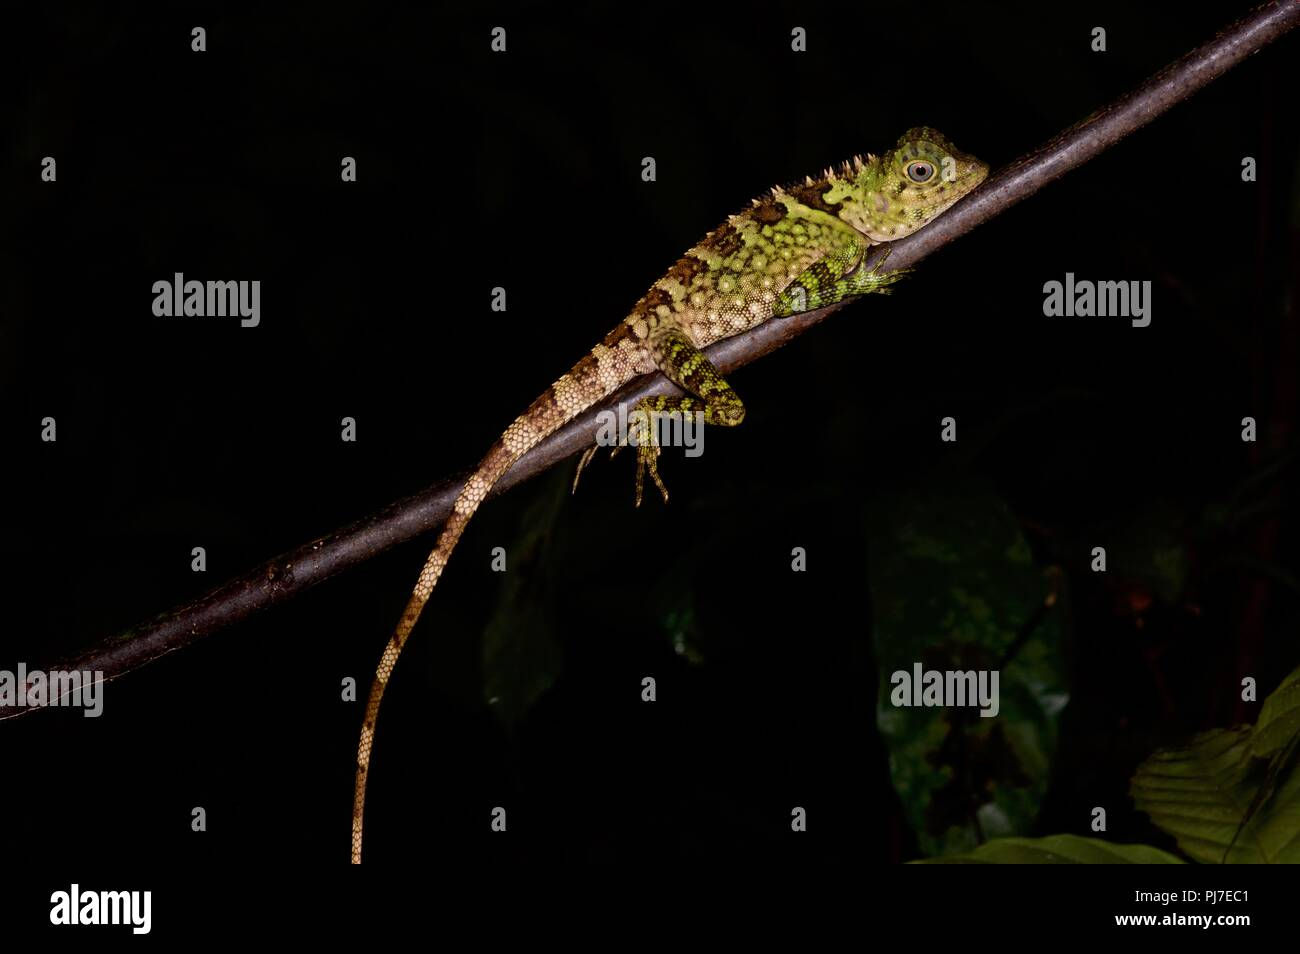 A Blue-eyed Angle-headed Lizard (Gonocephalus liogaster) resting at night in Gunung Gading National Park, Sarawak, East Malaysia, Borneo - Stock Image